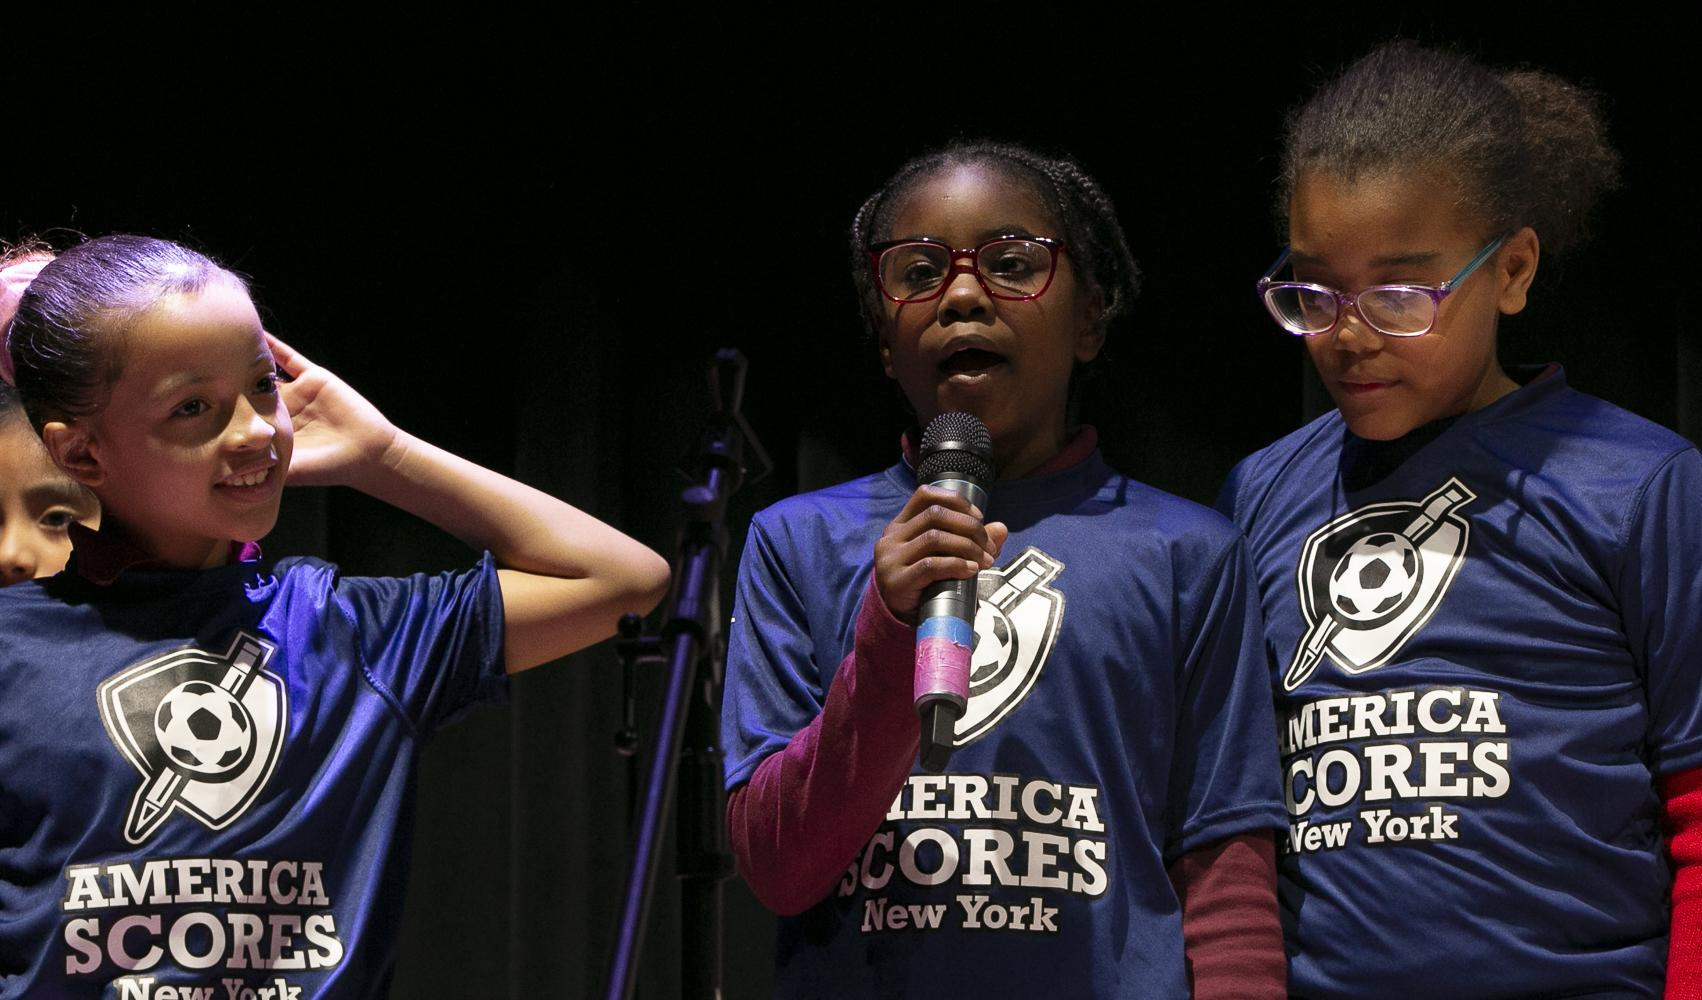 Girls participate in Poetry Slam